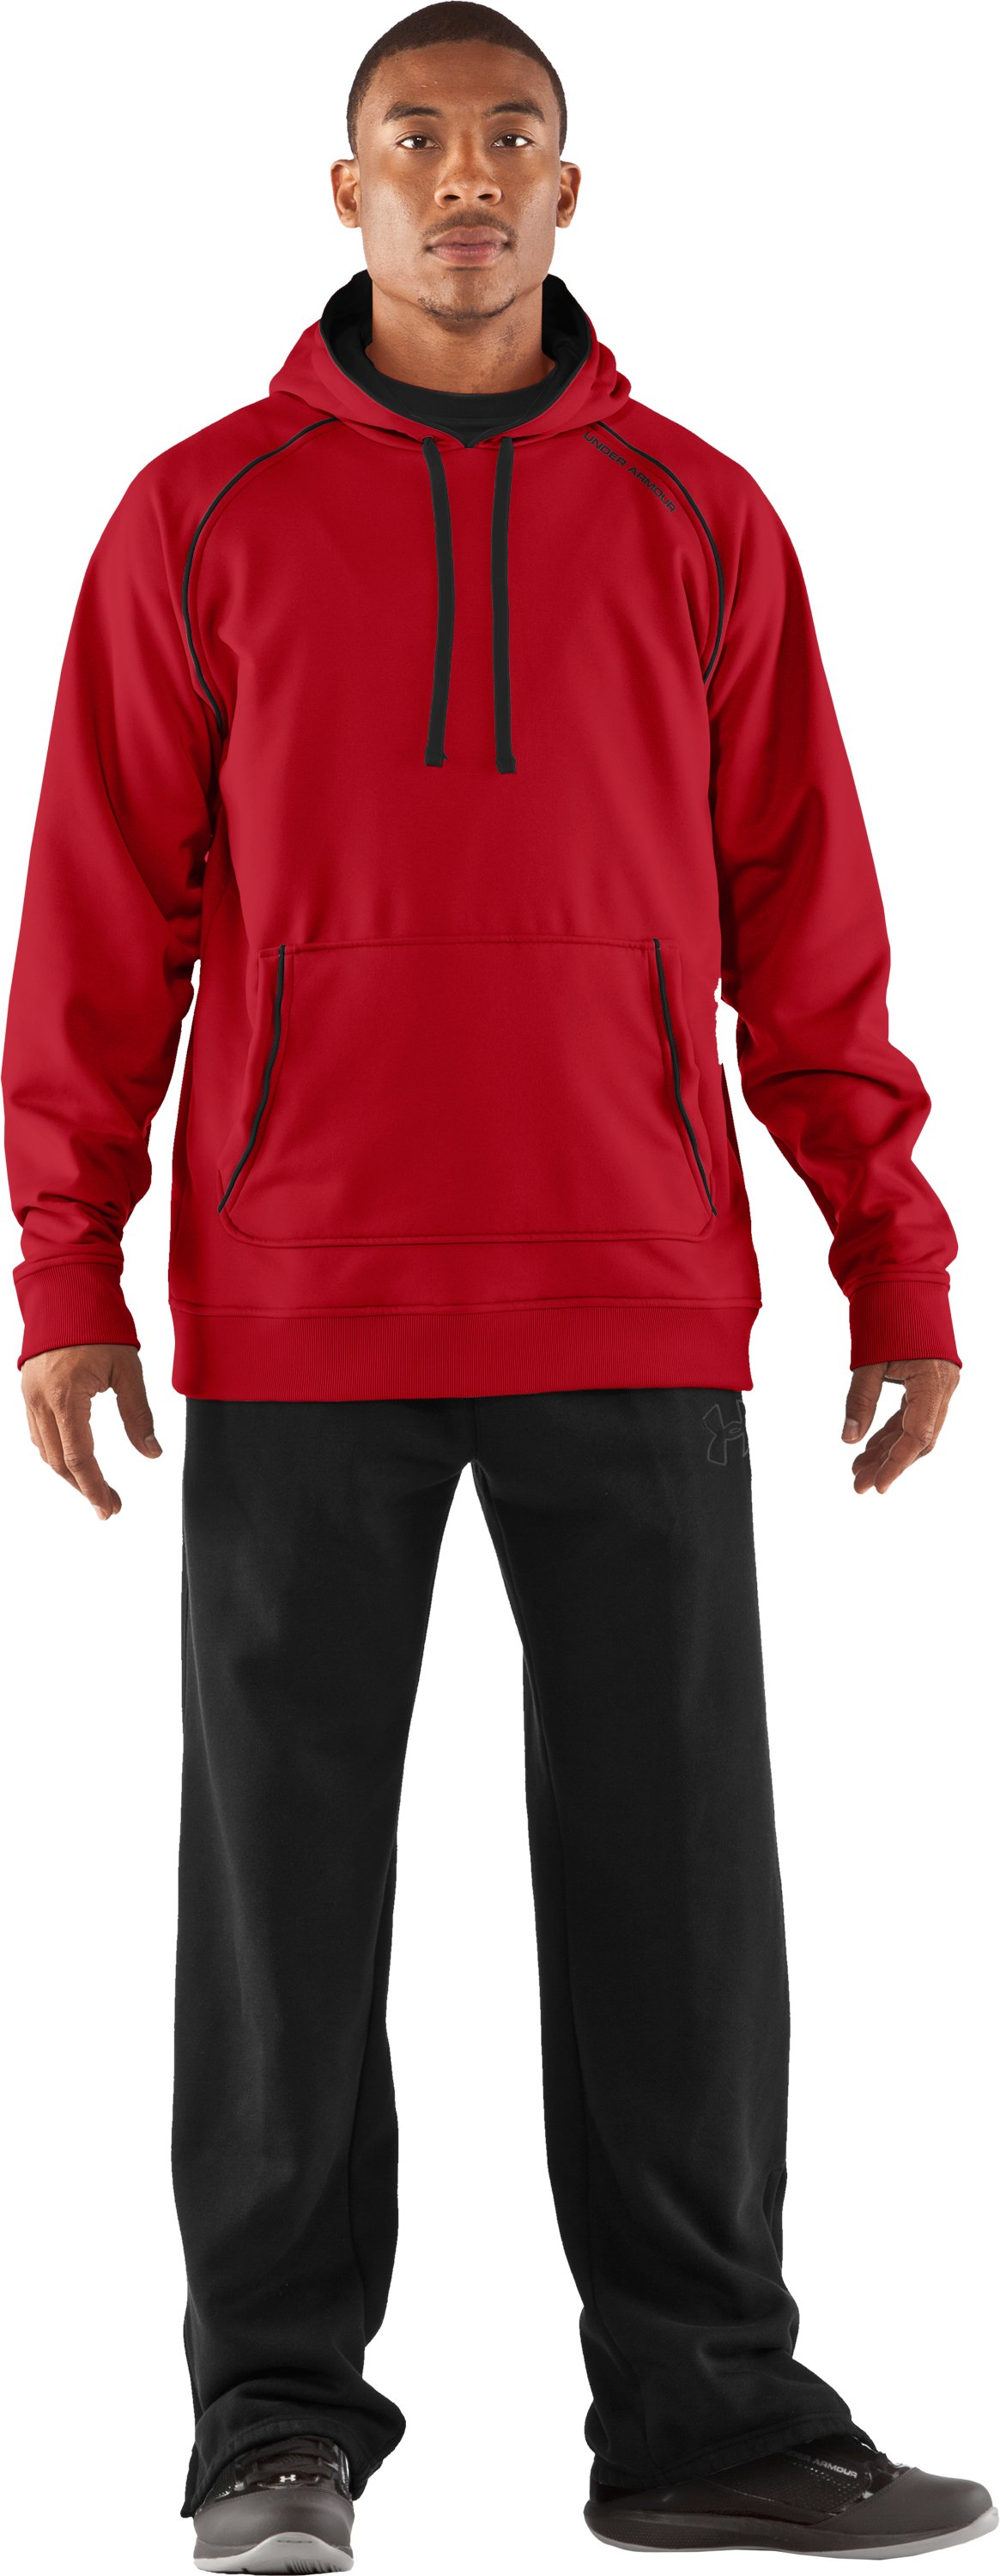 Men's Armour® Fleece Freshness Hoodie, Red, zoomed image